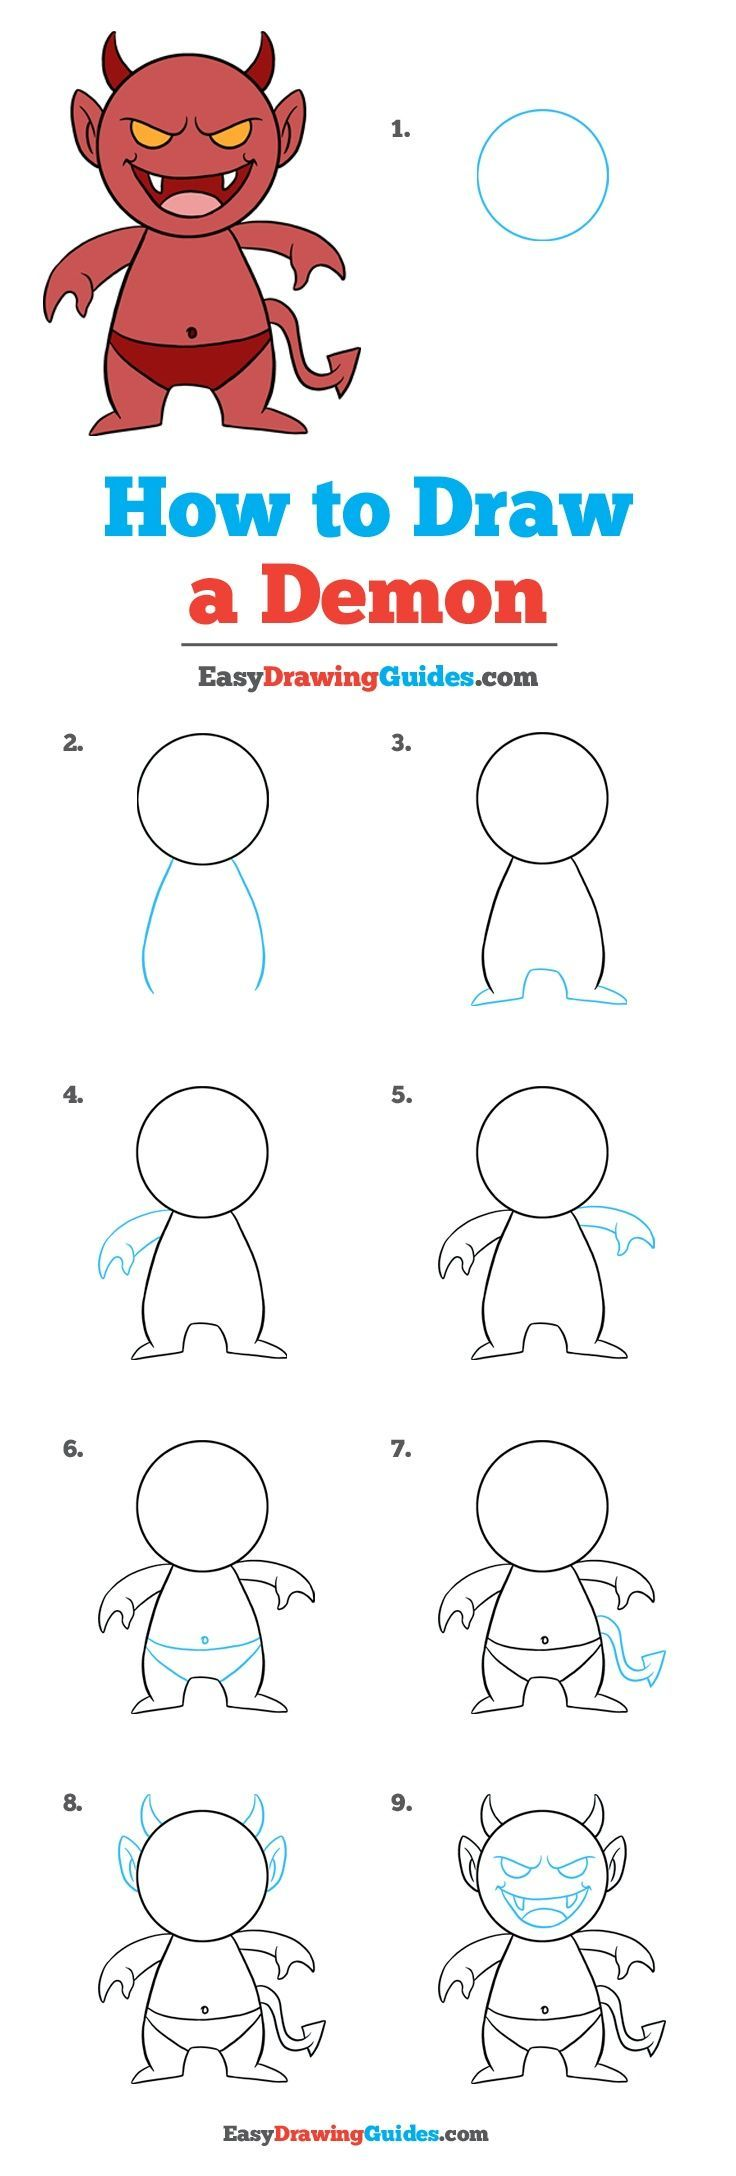 How To Draw A Demon - Really Easy Drawing Tutorial